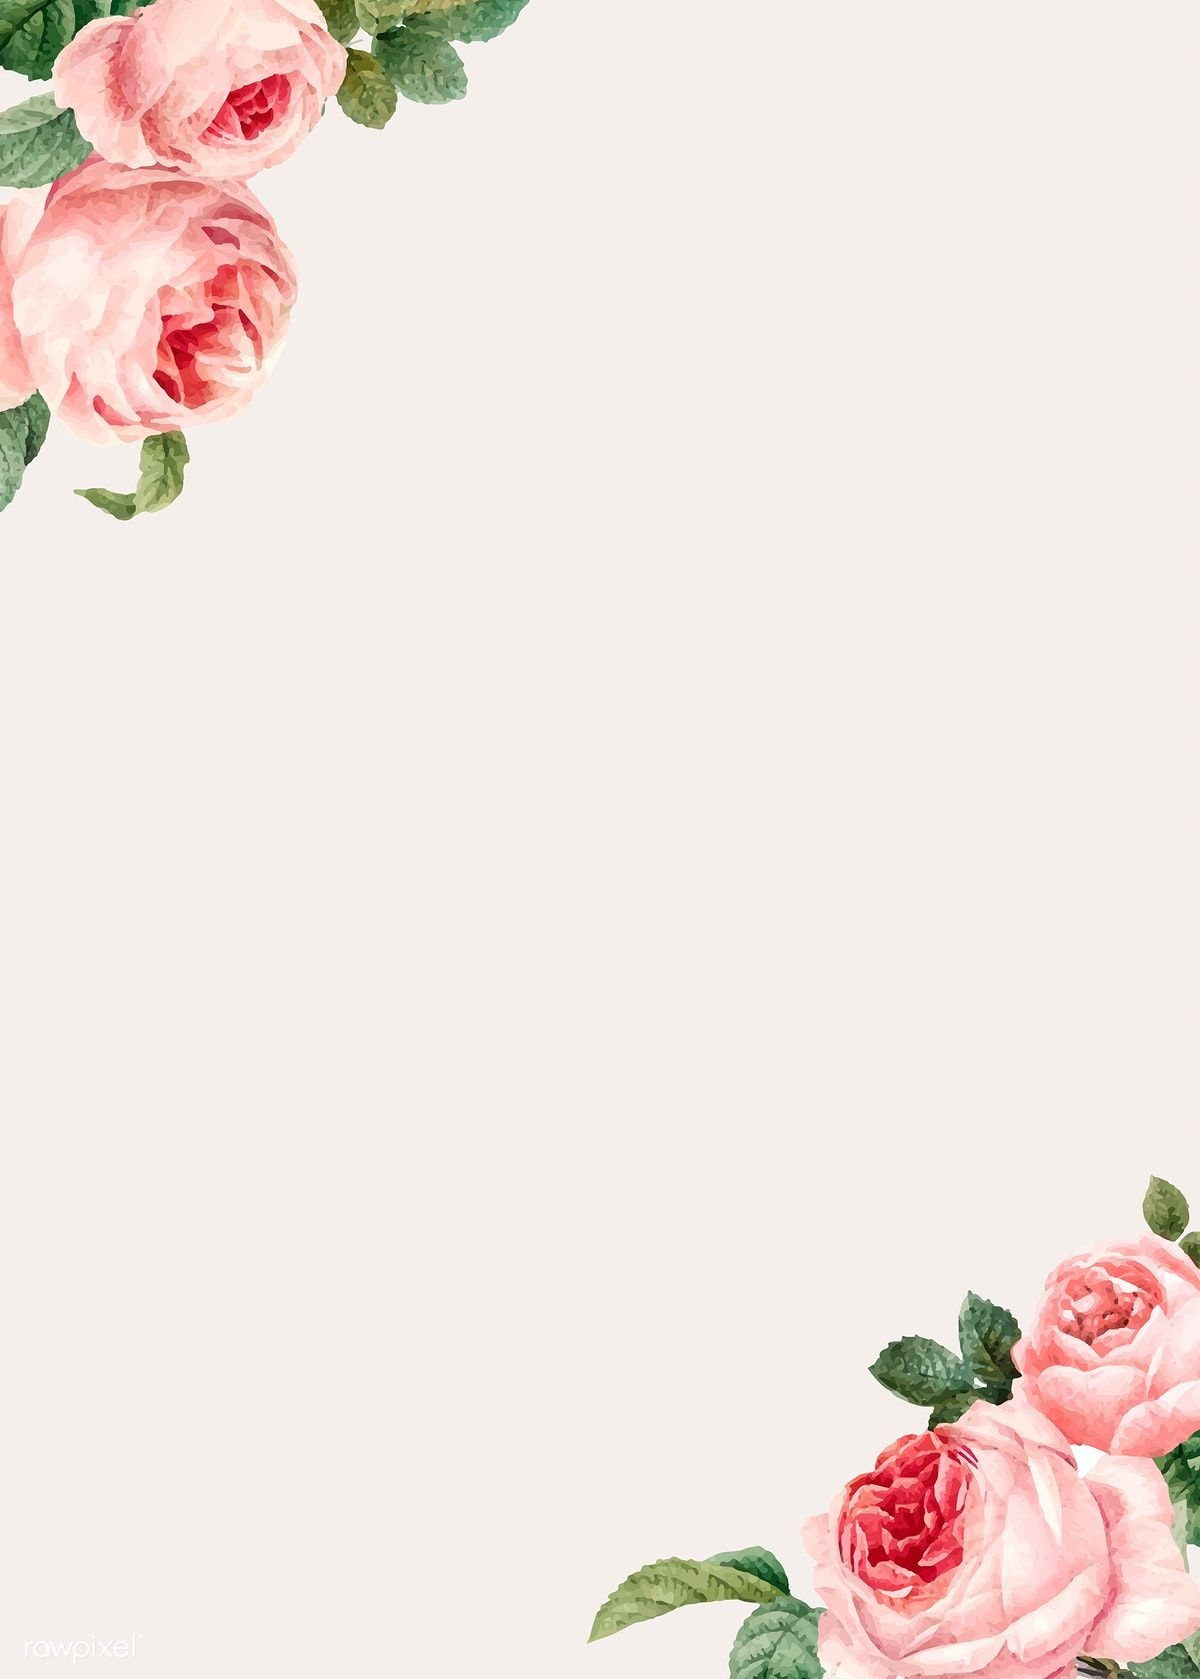 Hand Drawn Pink Roses Frame On Beige Background Vector Free Image By Rawpixel Com Niwat Rose Frame Flower Frame Vector Free